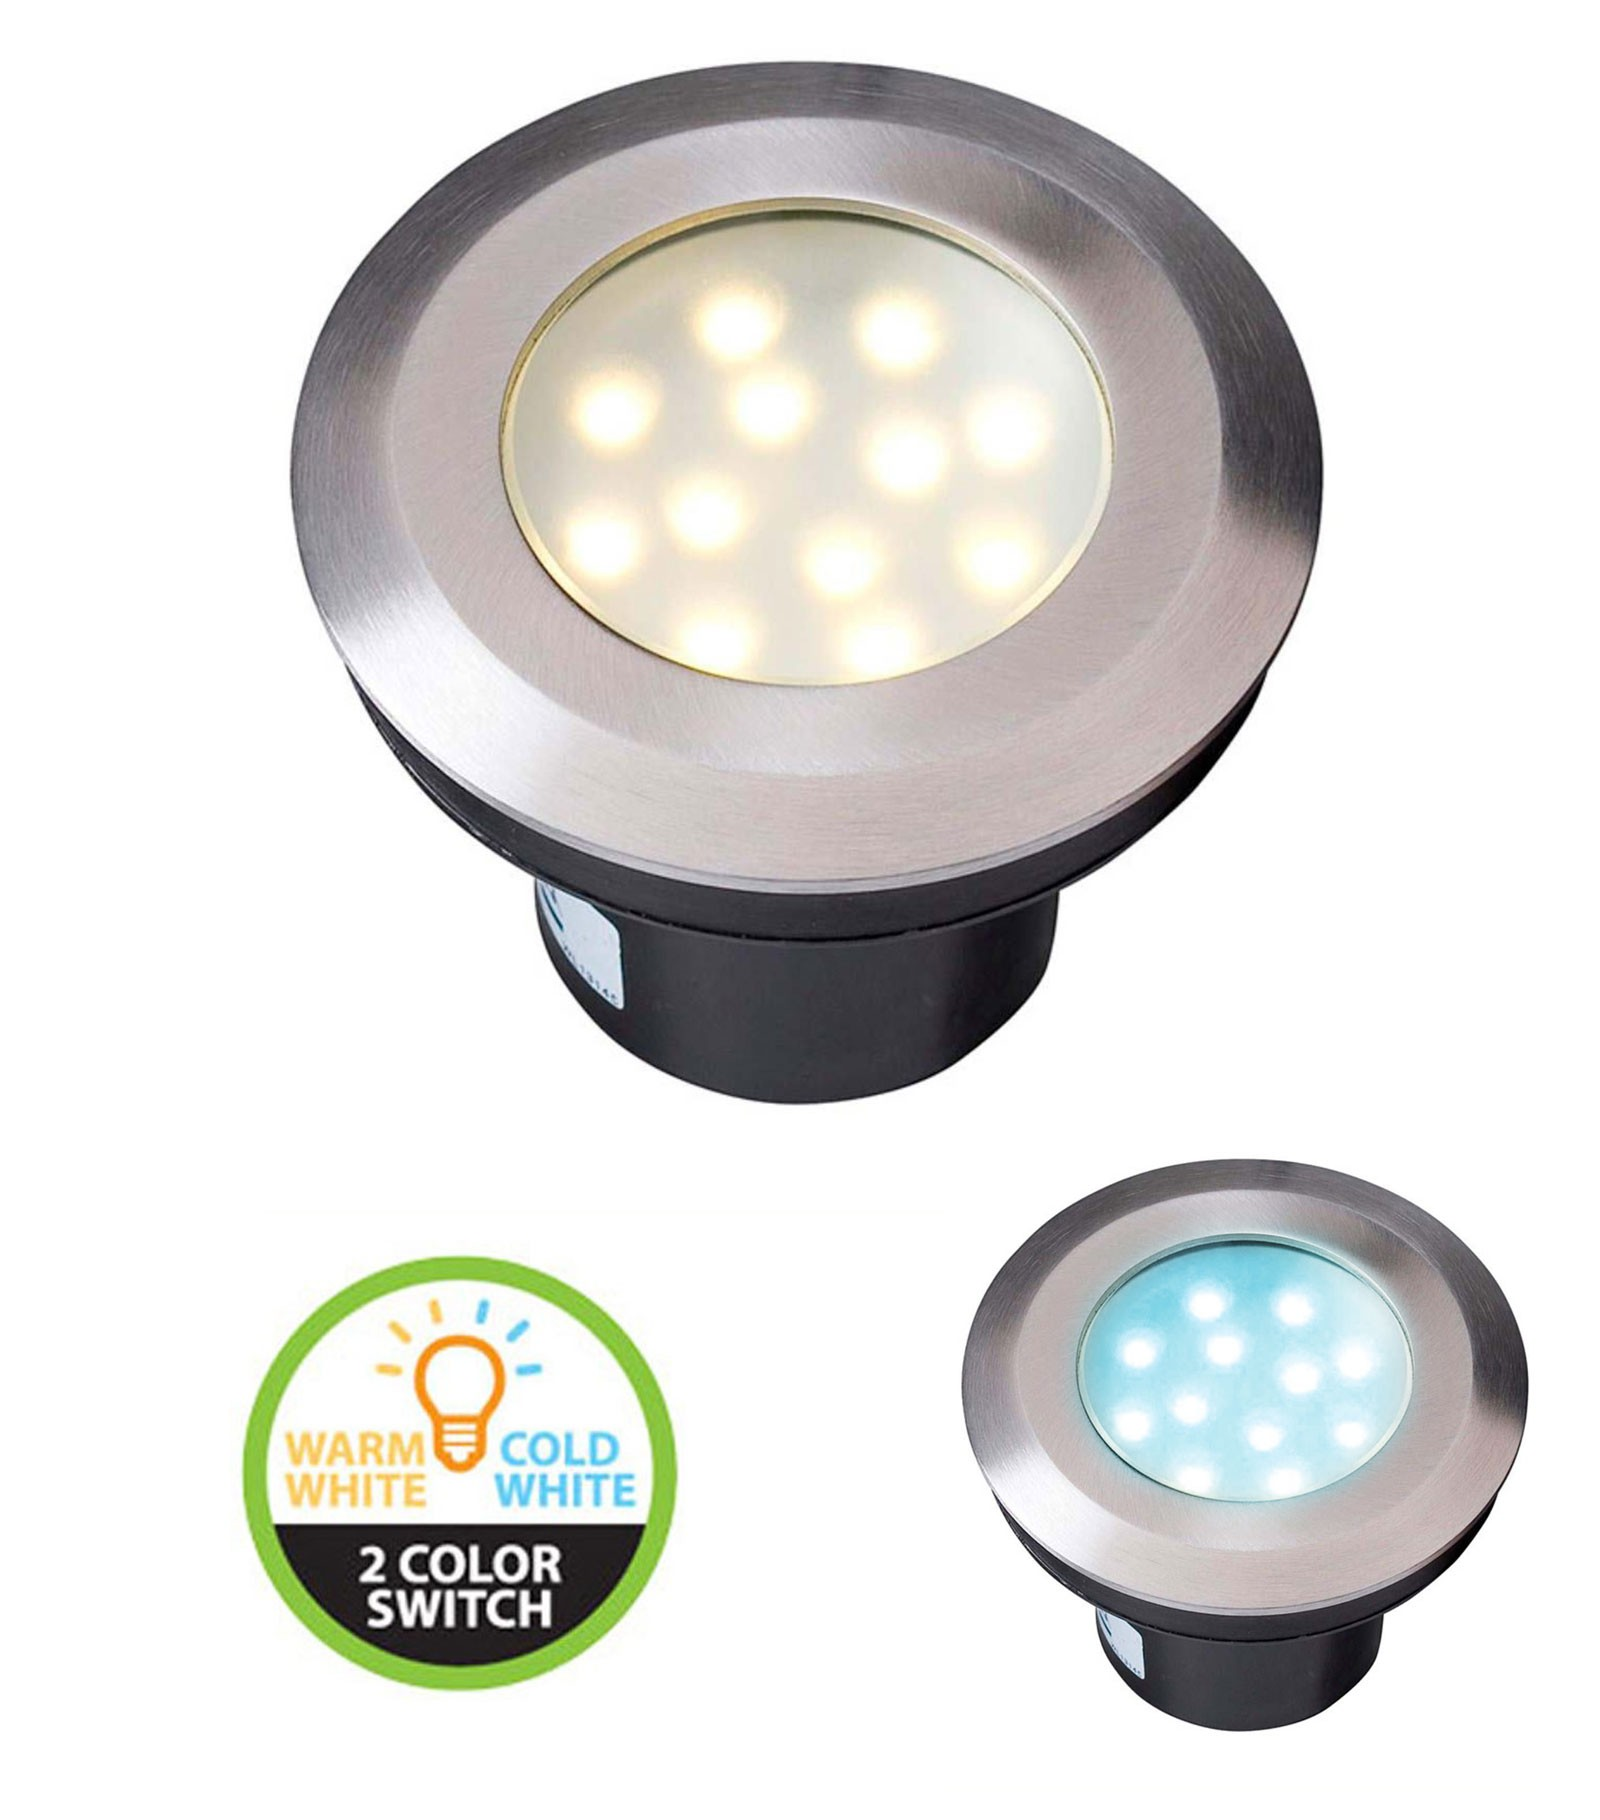 Eclairage Exterieur Led 12 Volts Spot Encastrable Gavia 2w Platine Led Ip67 Blanc Chaud Blanc